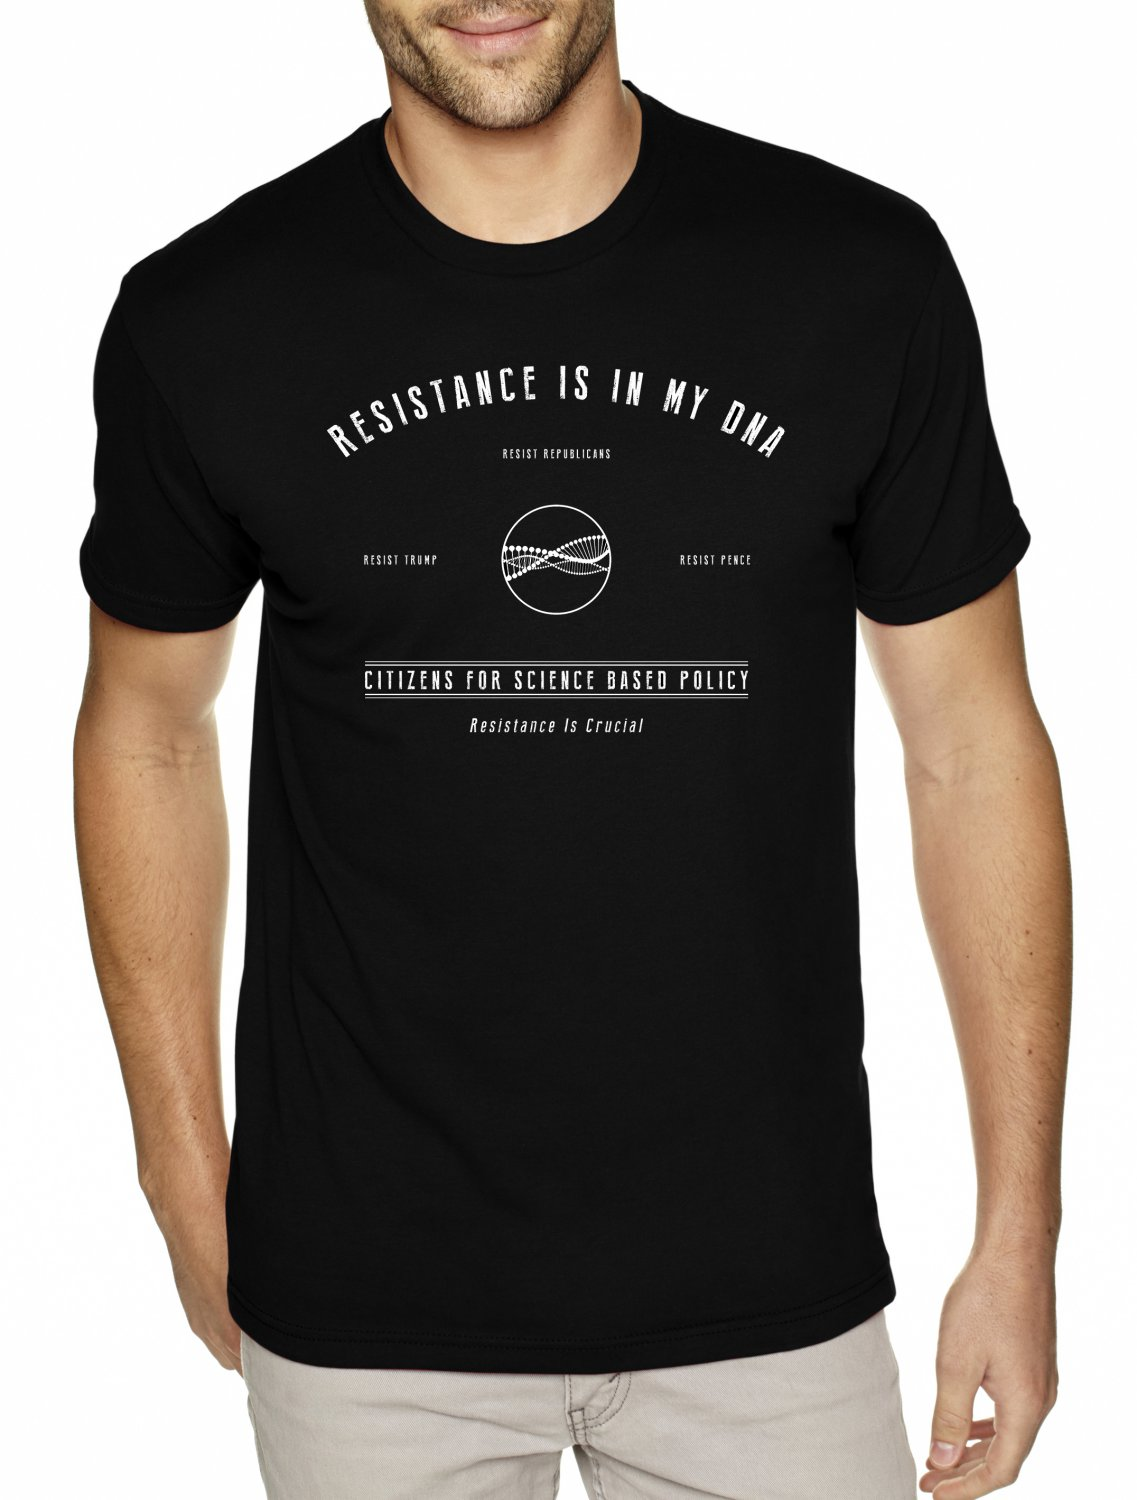 RESISTANCE IS IN MY DNA - Citizens For Science Based Policy - Premium Sueded Shirt SIZE M